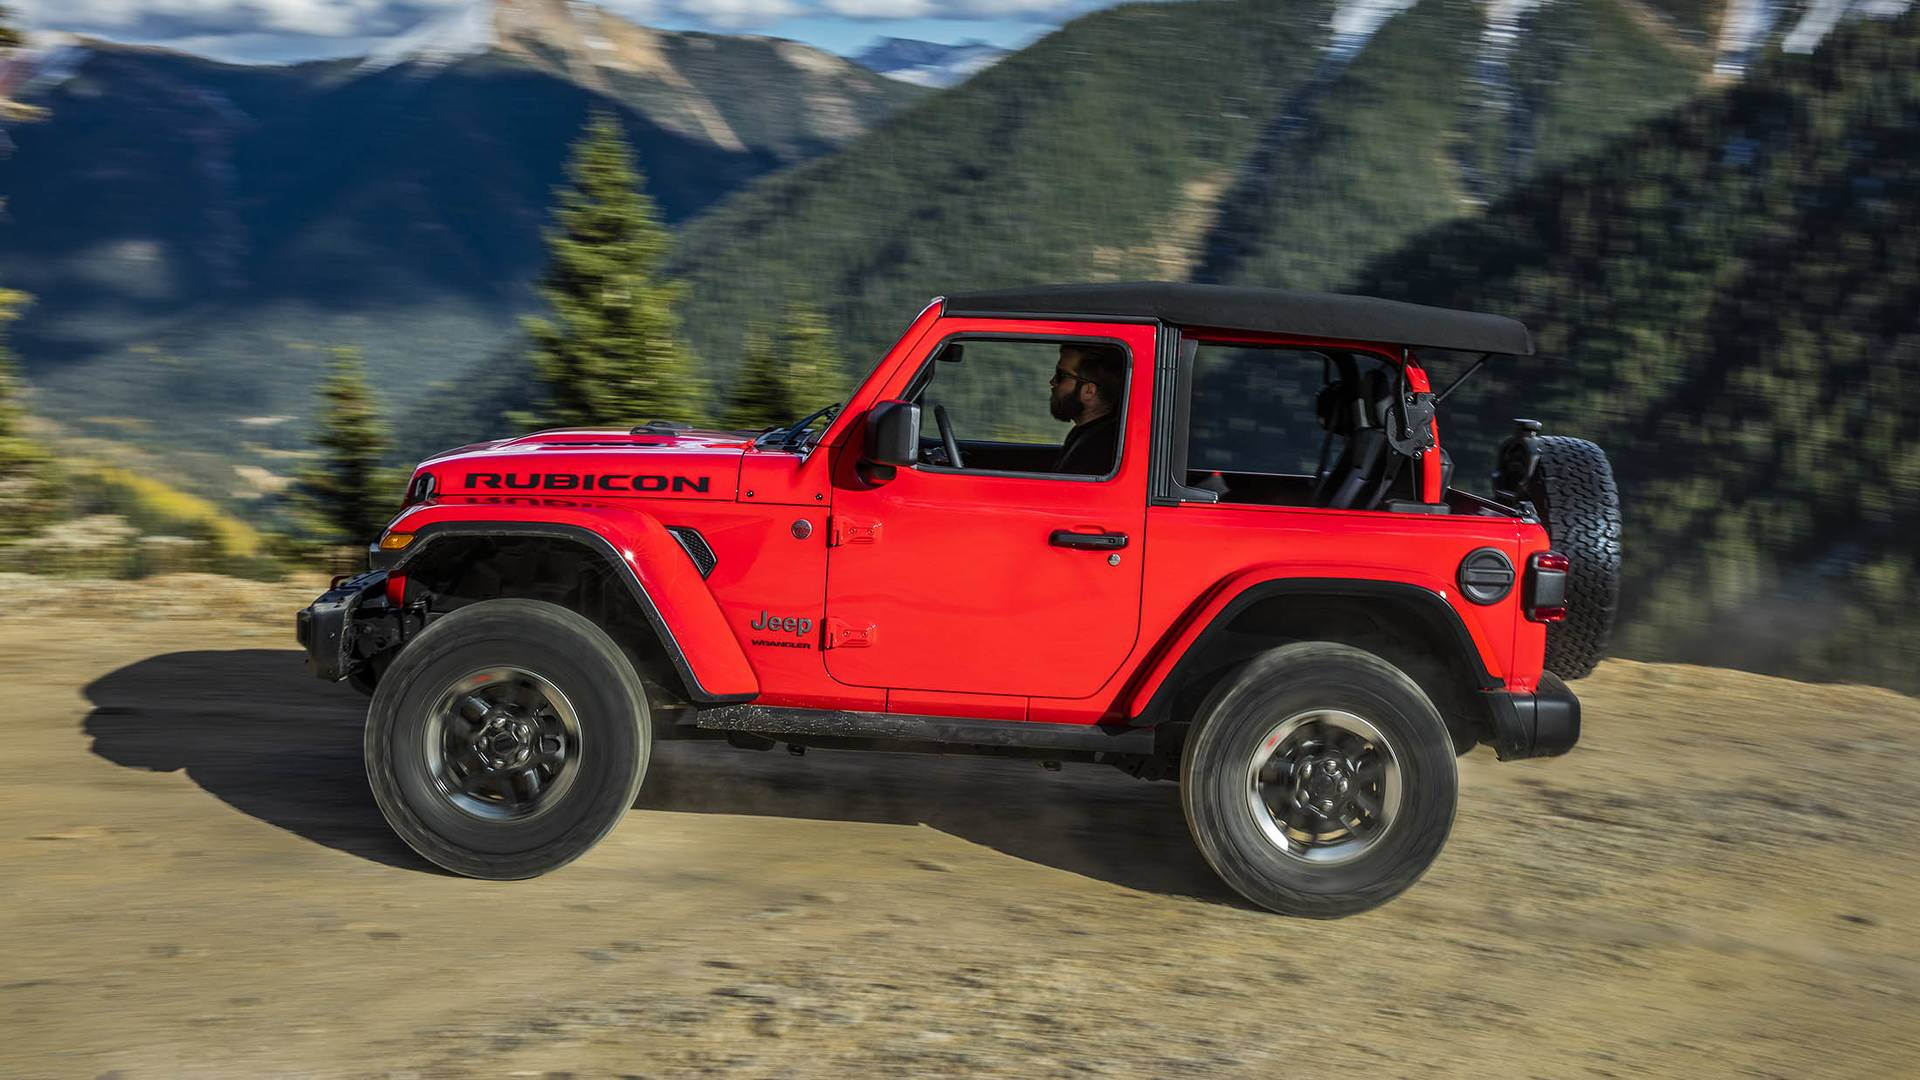 2018 Jeep Wrangler Price List: JL Starts At $26,995, JLU ...